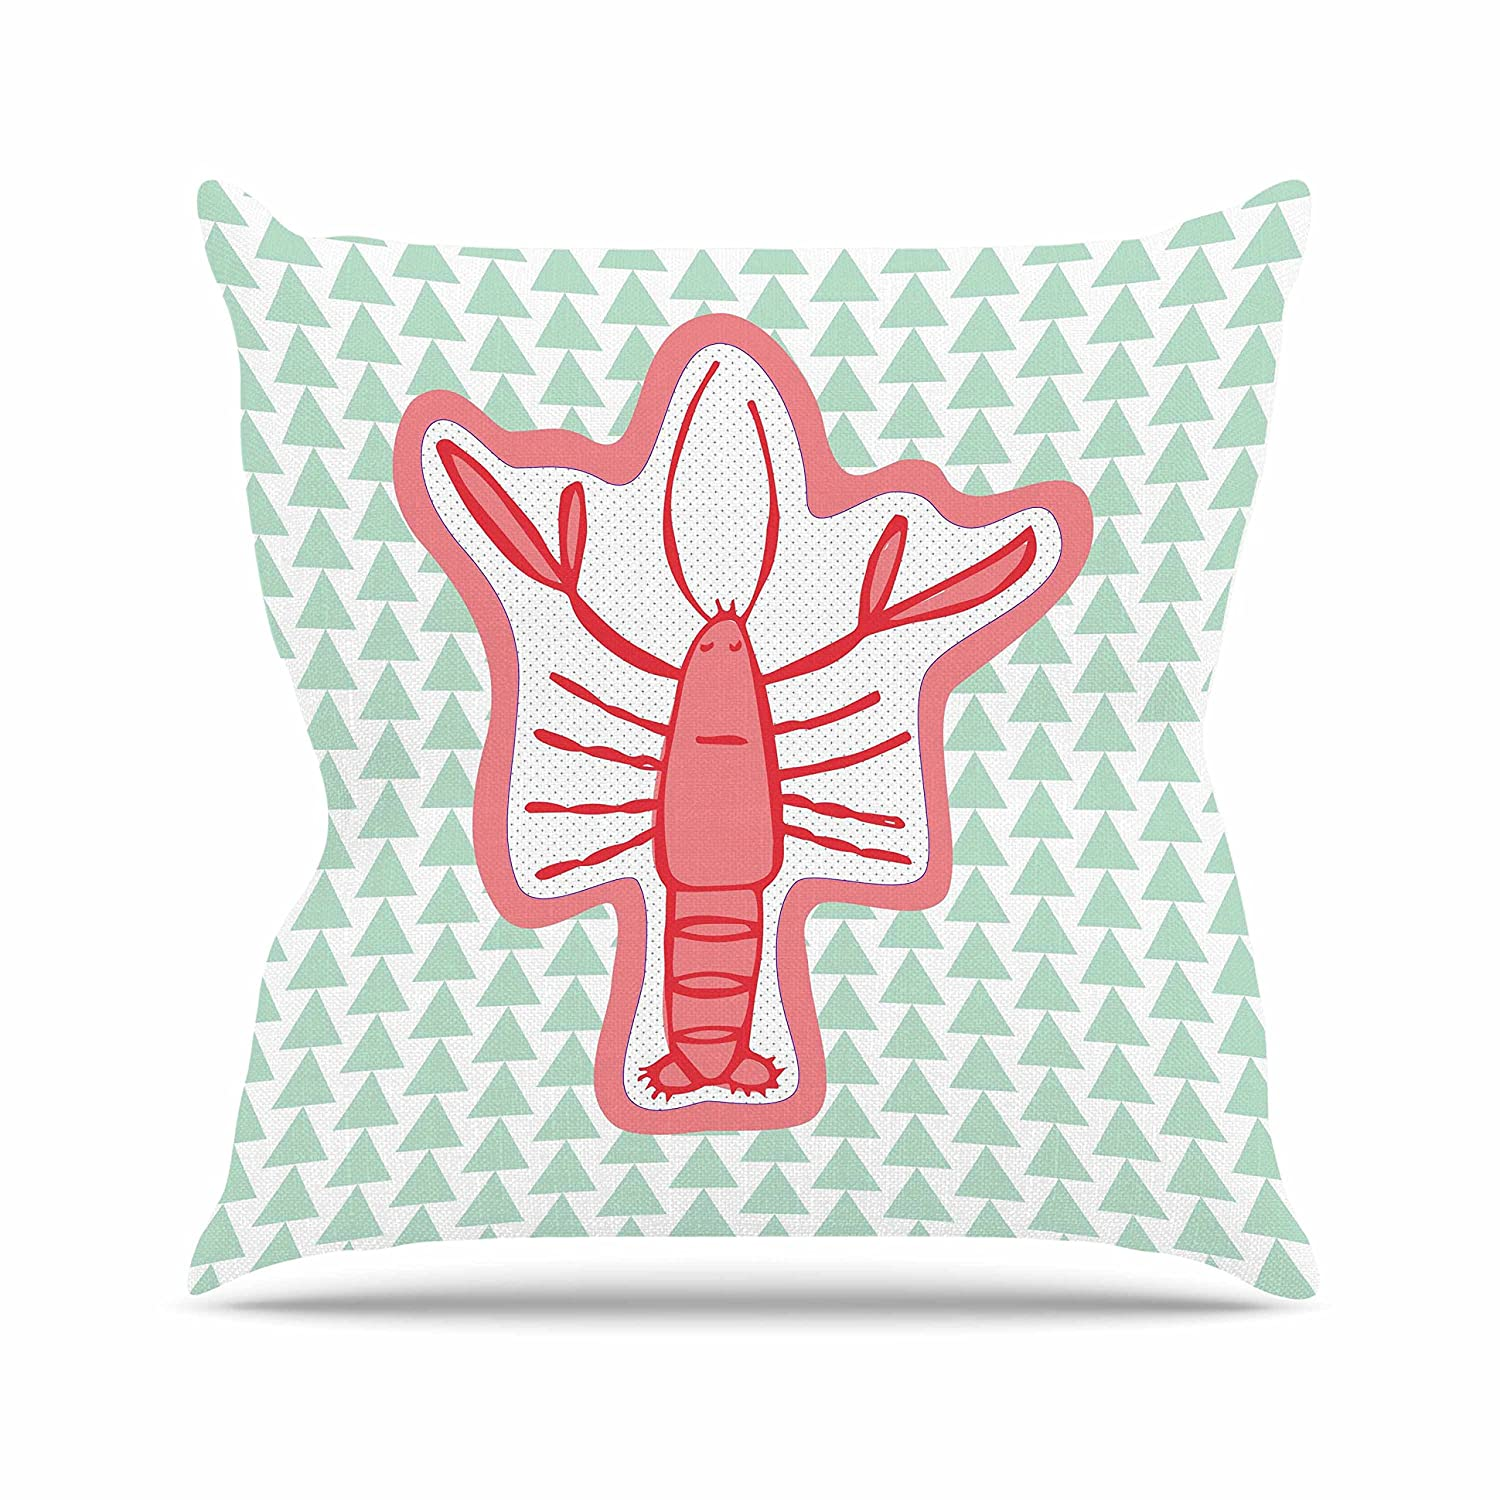 Kess InHouse MaJoBV Langosta Red Lobster Throw Pillow 16 by 16